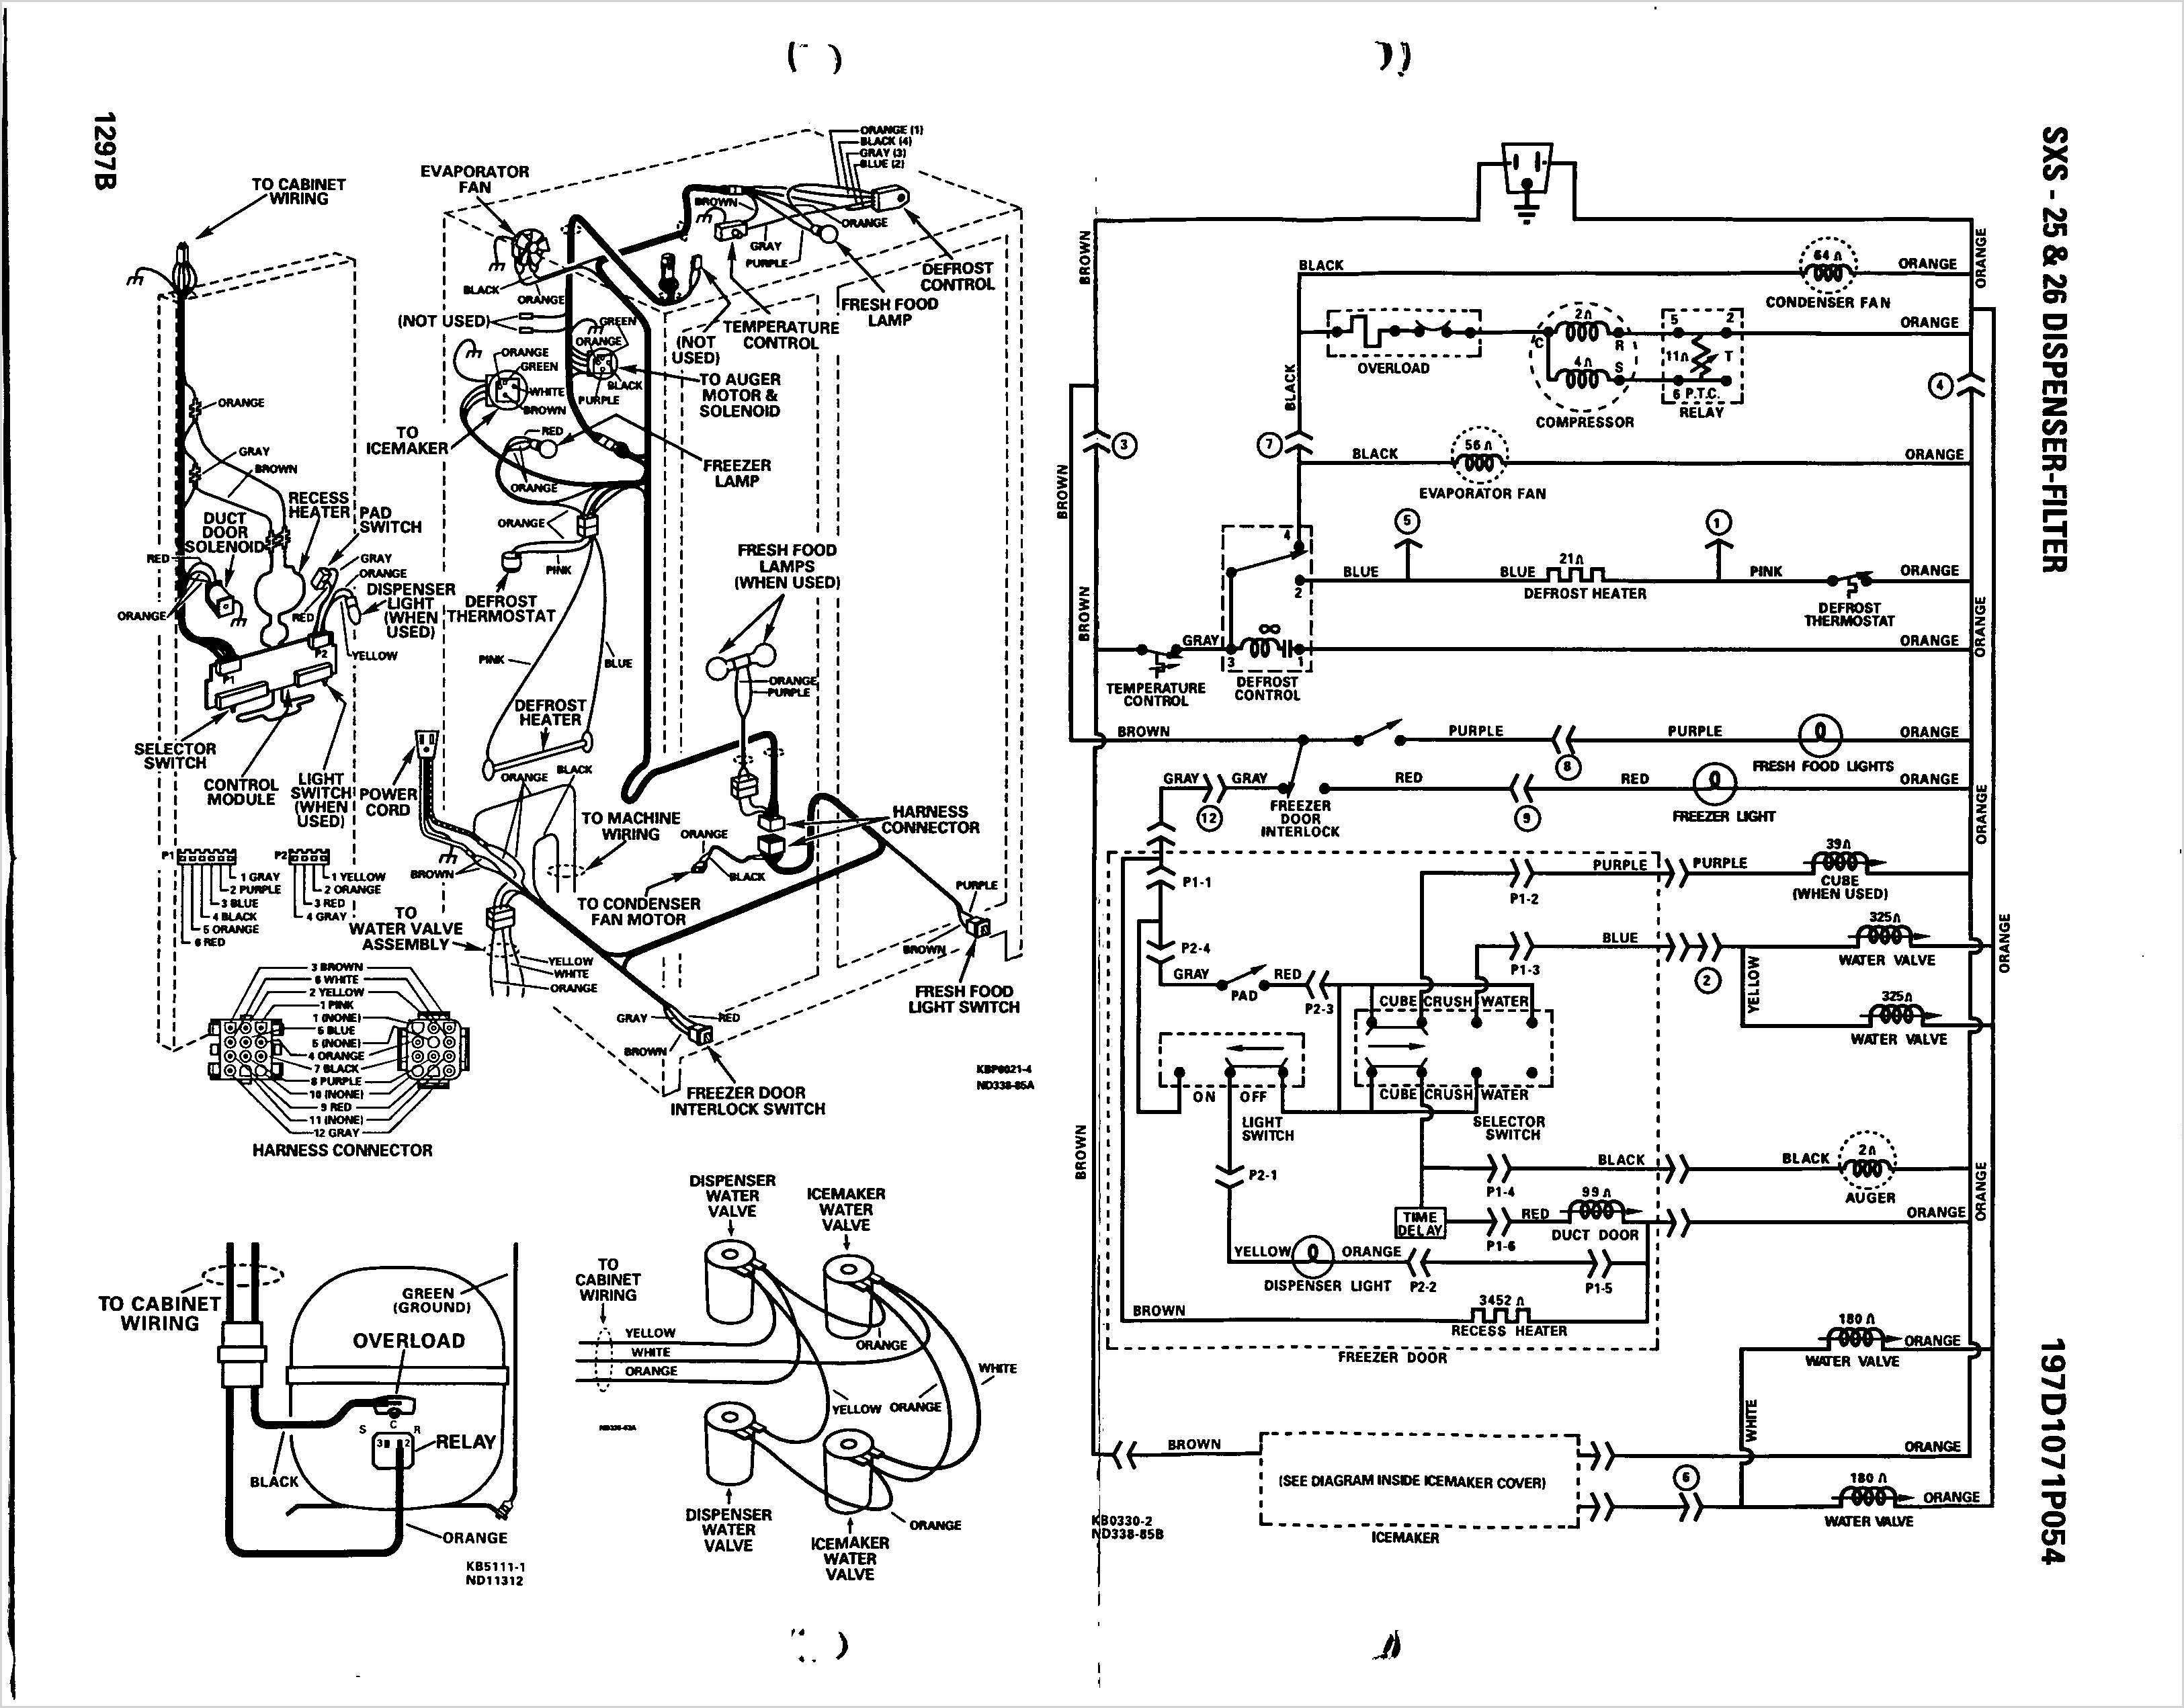 ge stove wiring diagram Collection-ge stove wiring diagram Download Ge Refrigerator Wiring Diagram Ice Maker Luxury Circuit Ge Profile DOWNLOAD Wiring Diagram Sheets Detail Name ge stove 16-p